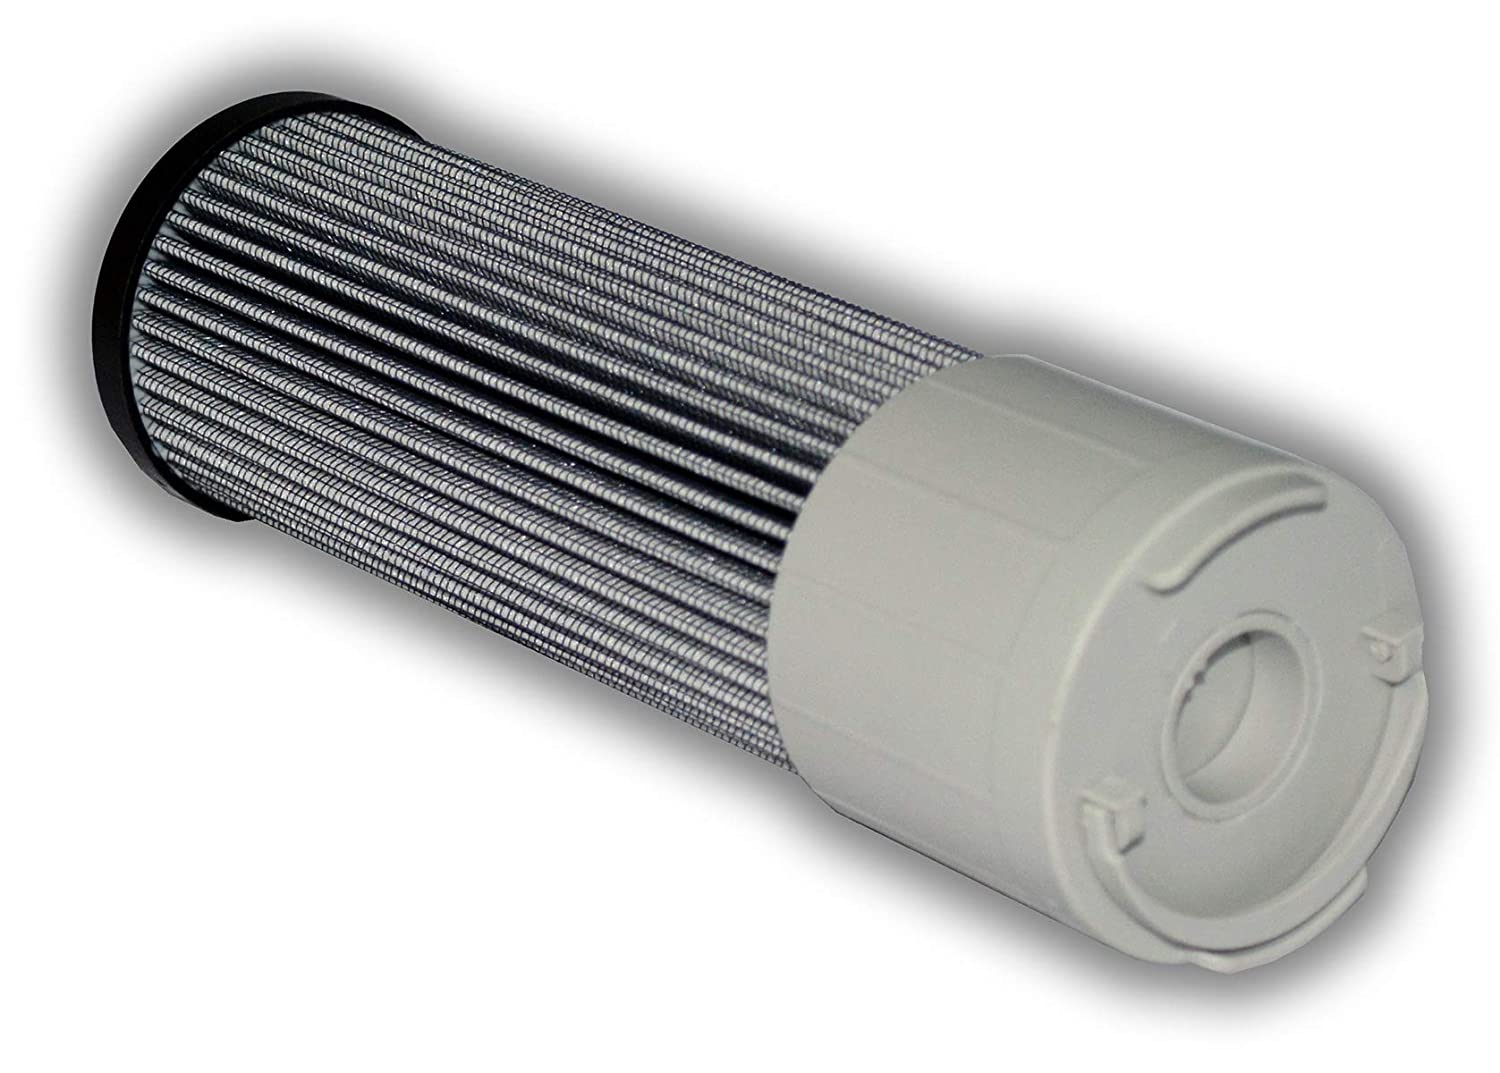 Parker 934204 Heavy Duty Replacement Hydraulic Filter Element from Big Filter 2-Pack